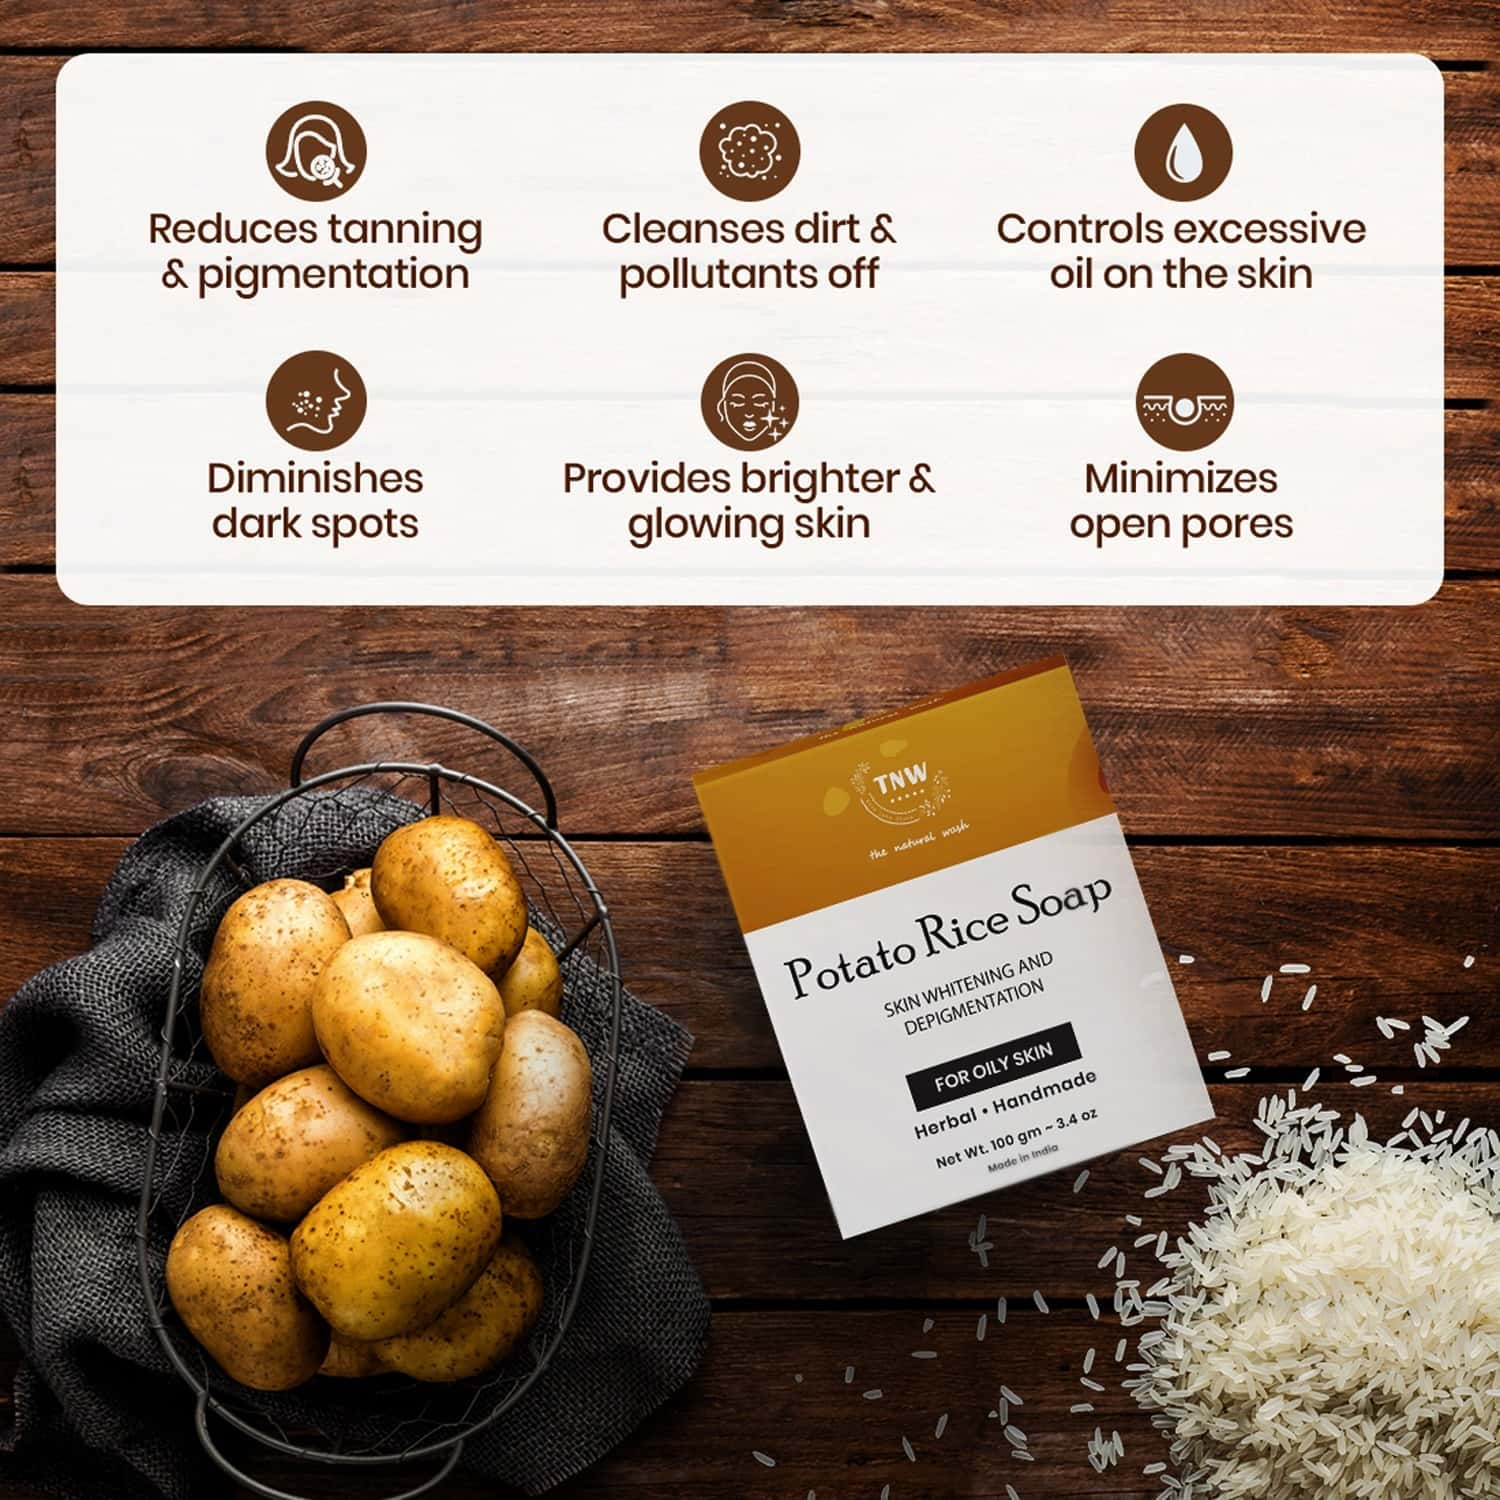 Tnw -the Natural Wash Handmade Potato Rice Soap For Tanning Pigmentation & Oily Skin - 100 Gm